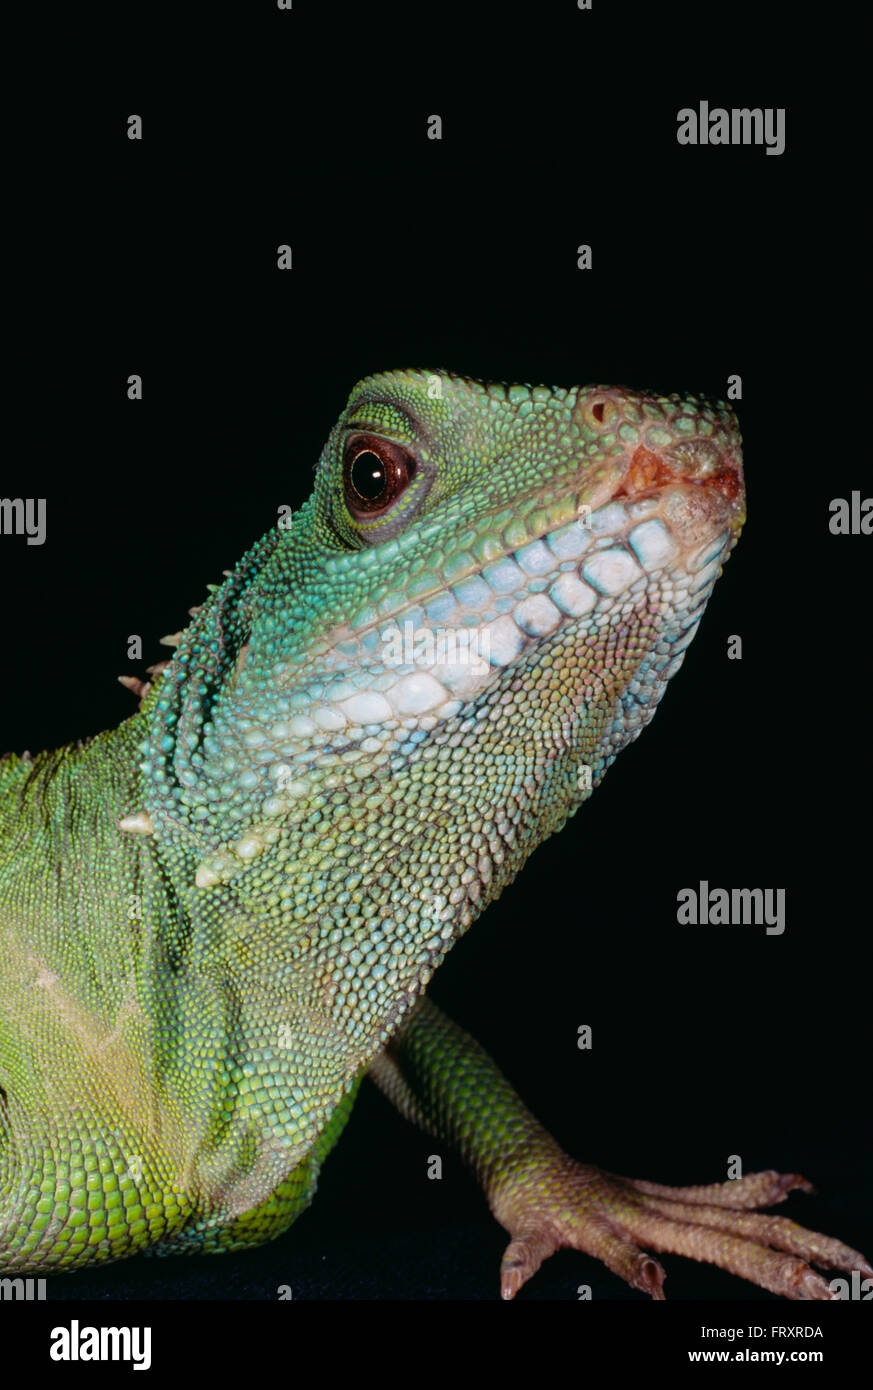 Portrait of a Young Green Iguana - Stock Image